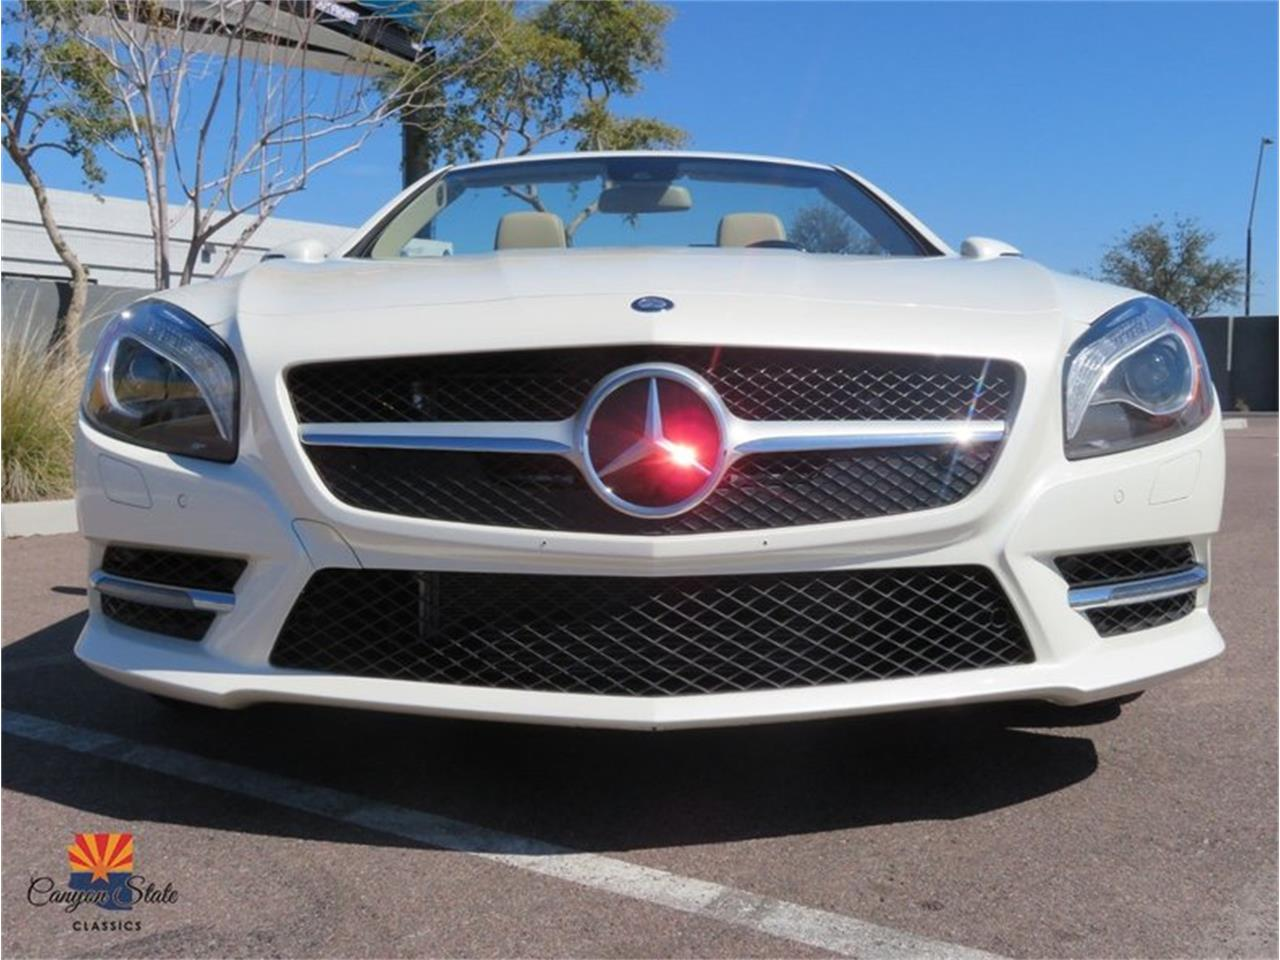 2013 Mercedes-Benz SL-Class for sale in Tempe, AZ – photo 32